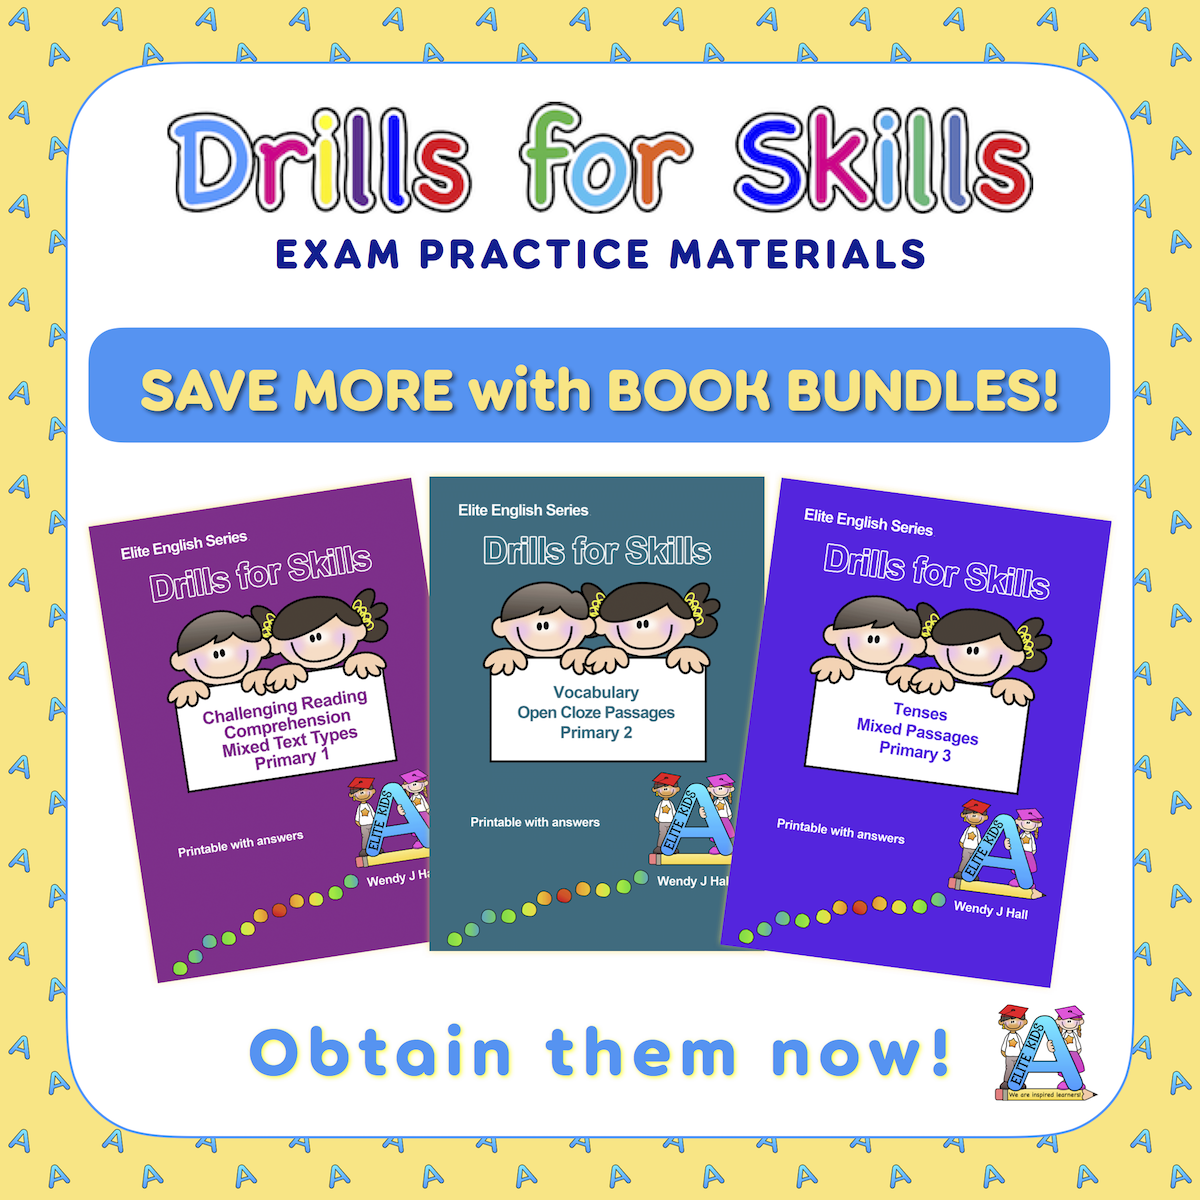 Drills for Skills Book Bundles and Workbook Sets